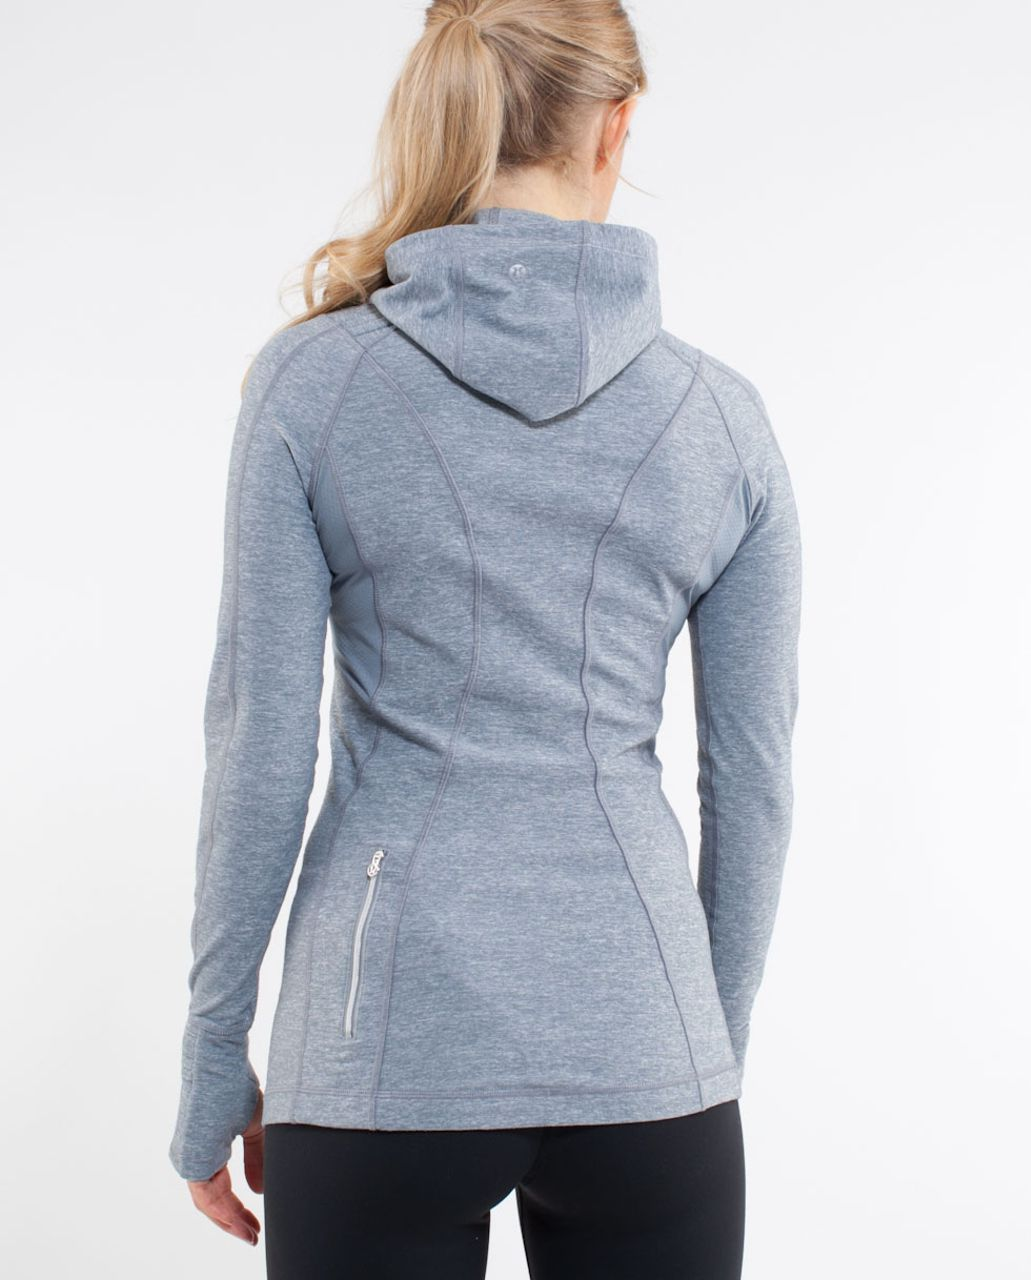 Lululemon Run:  Back On Track Pullover - Heathered Blurred Grey